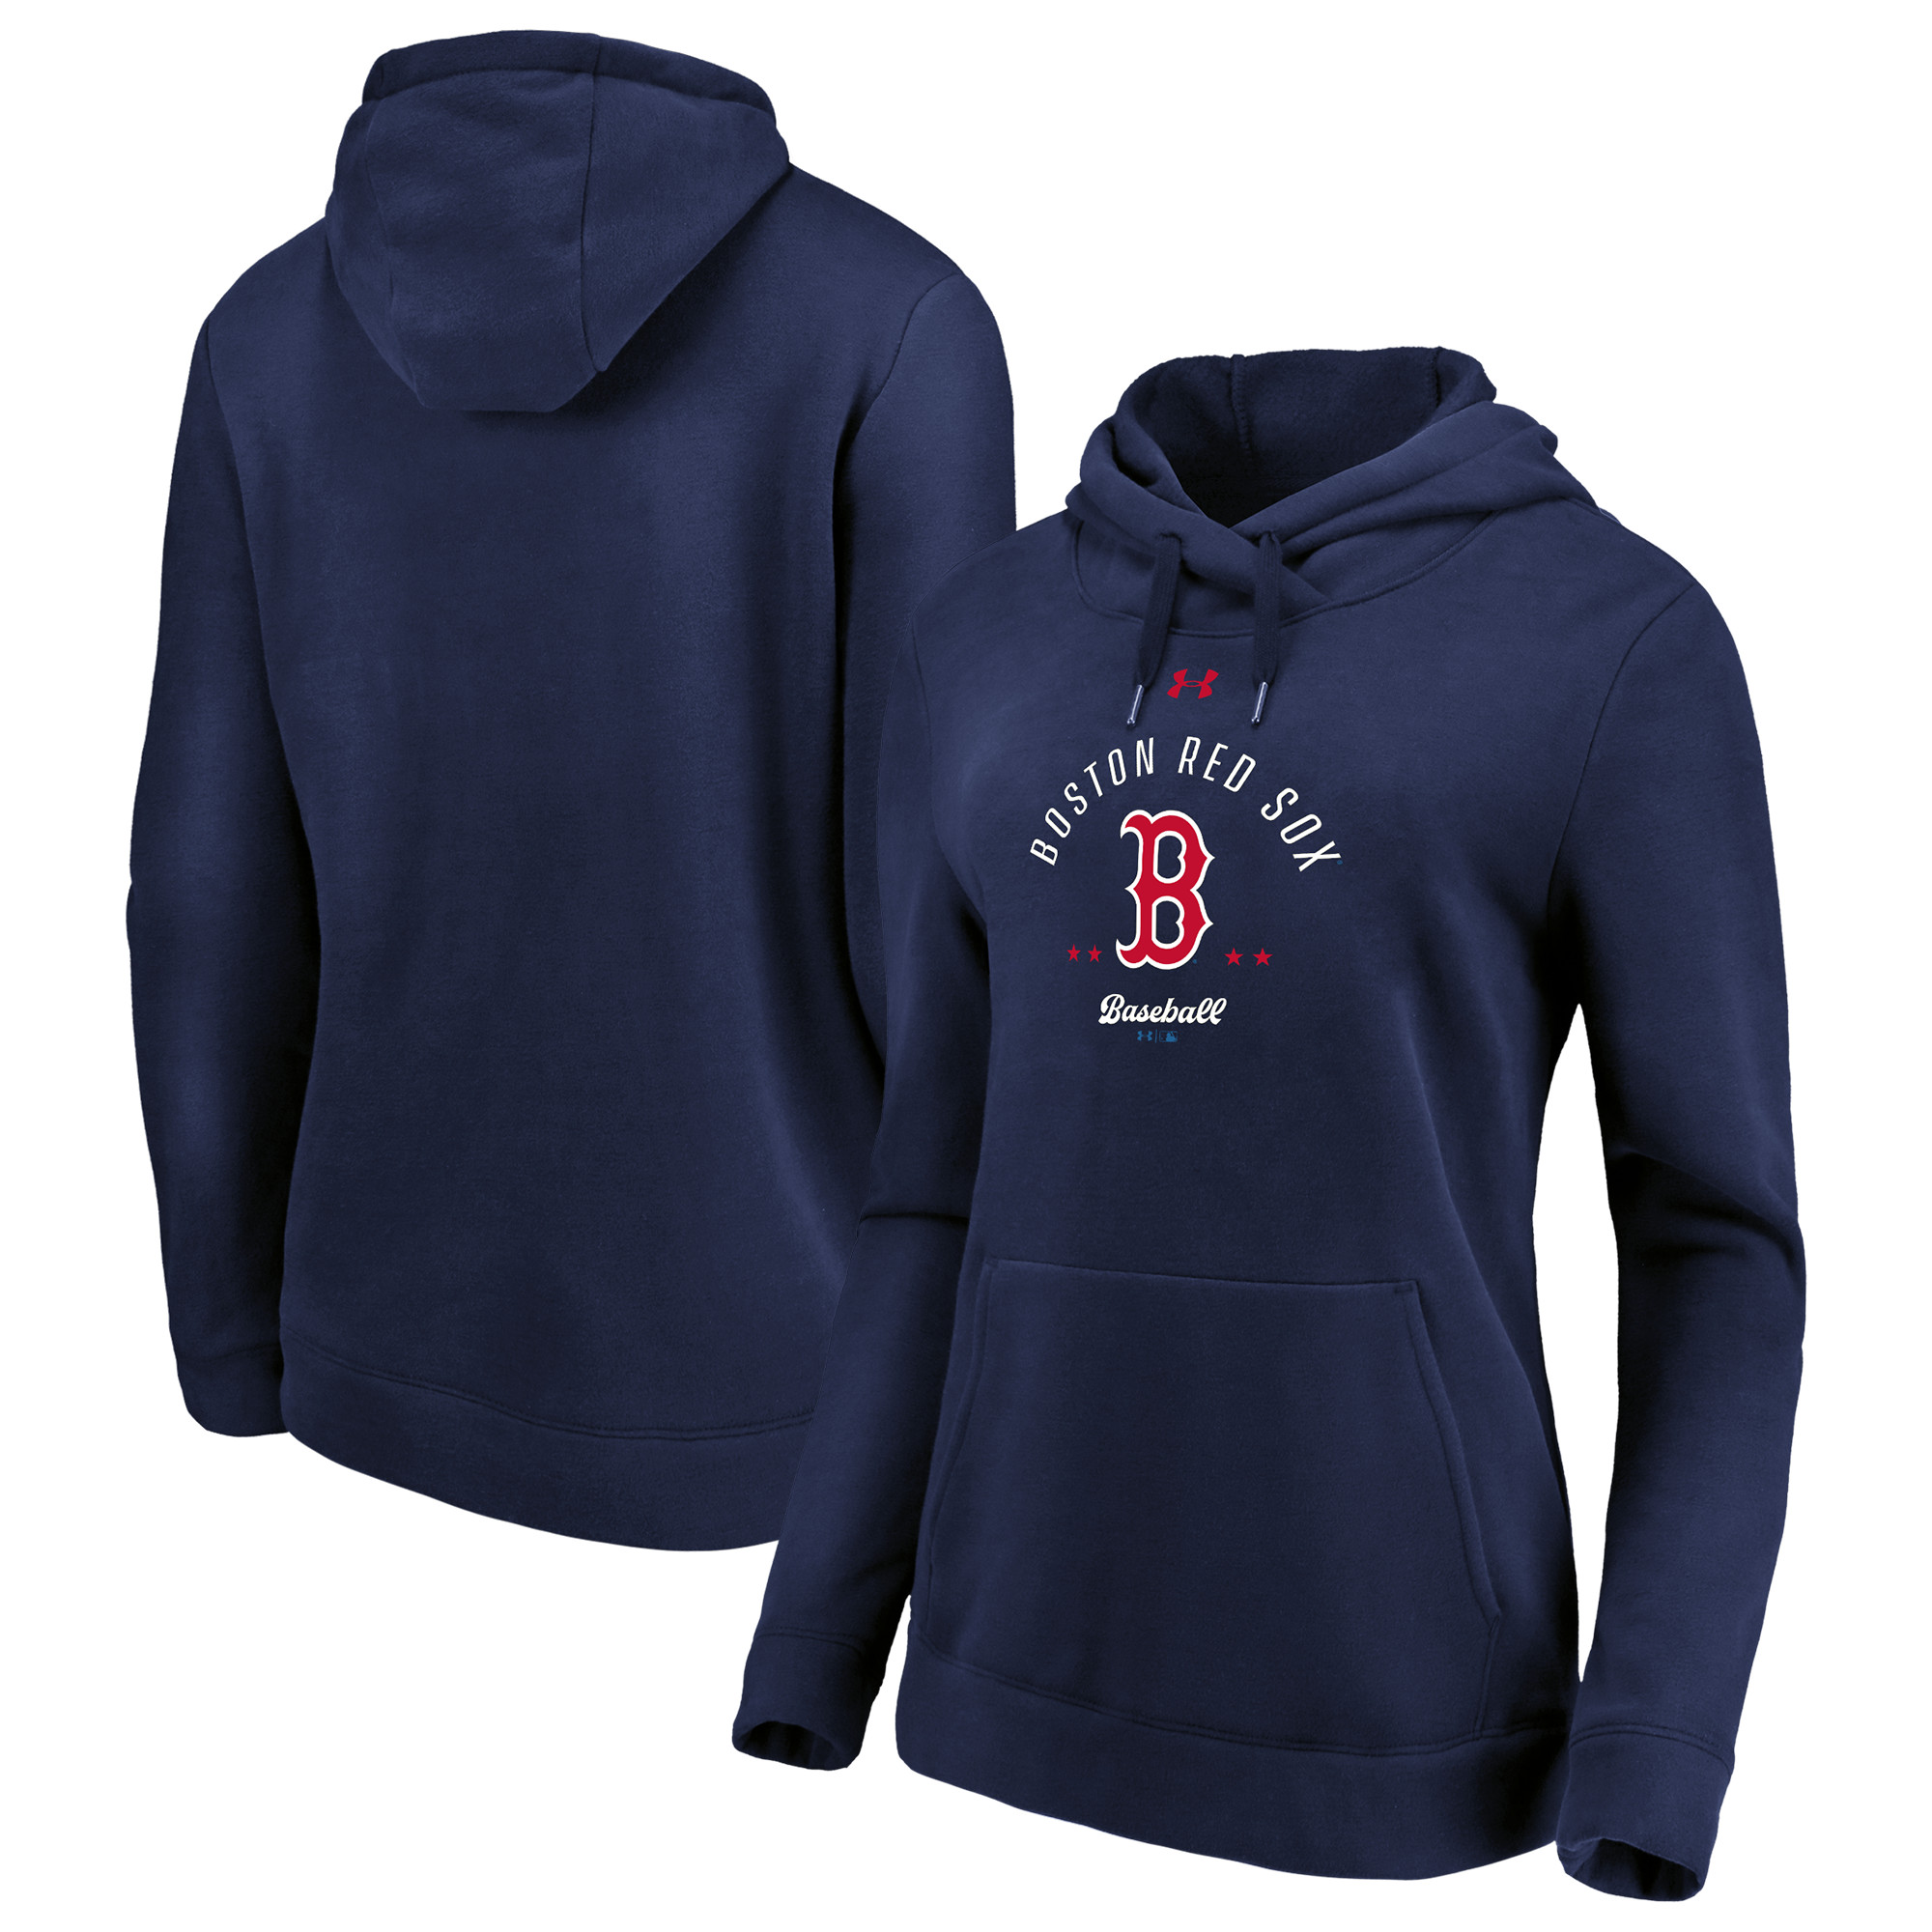 Boston Red Sox Under Armour Women's Unassisted Triple Play Lightweight Fleece Pullover Sweatshirt - Navy